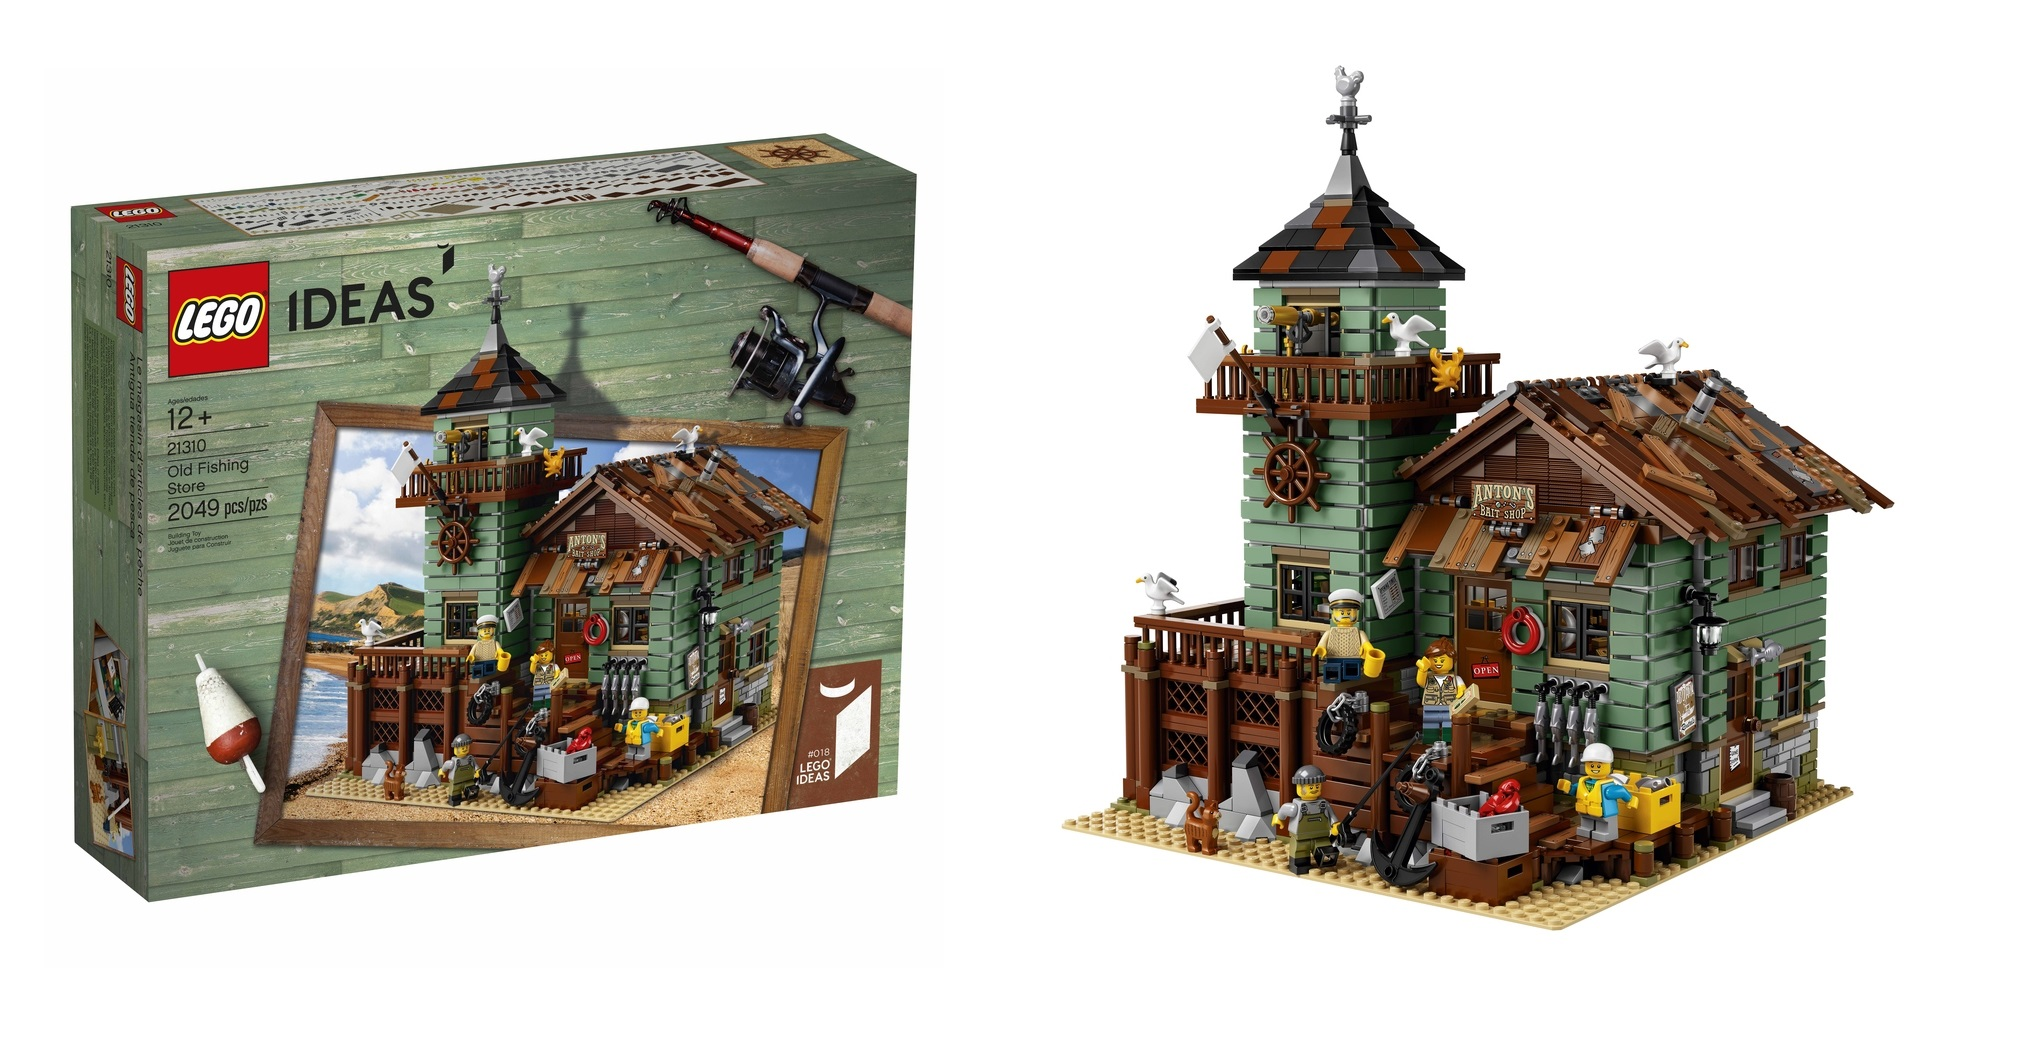 Fishing House Lego Ideas Fishing Ideas Lego L354jAR